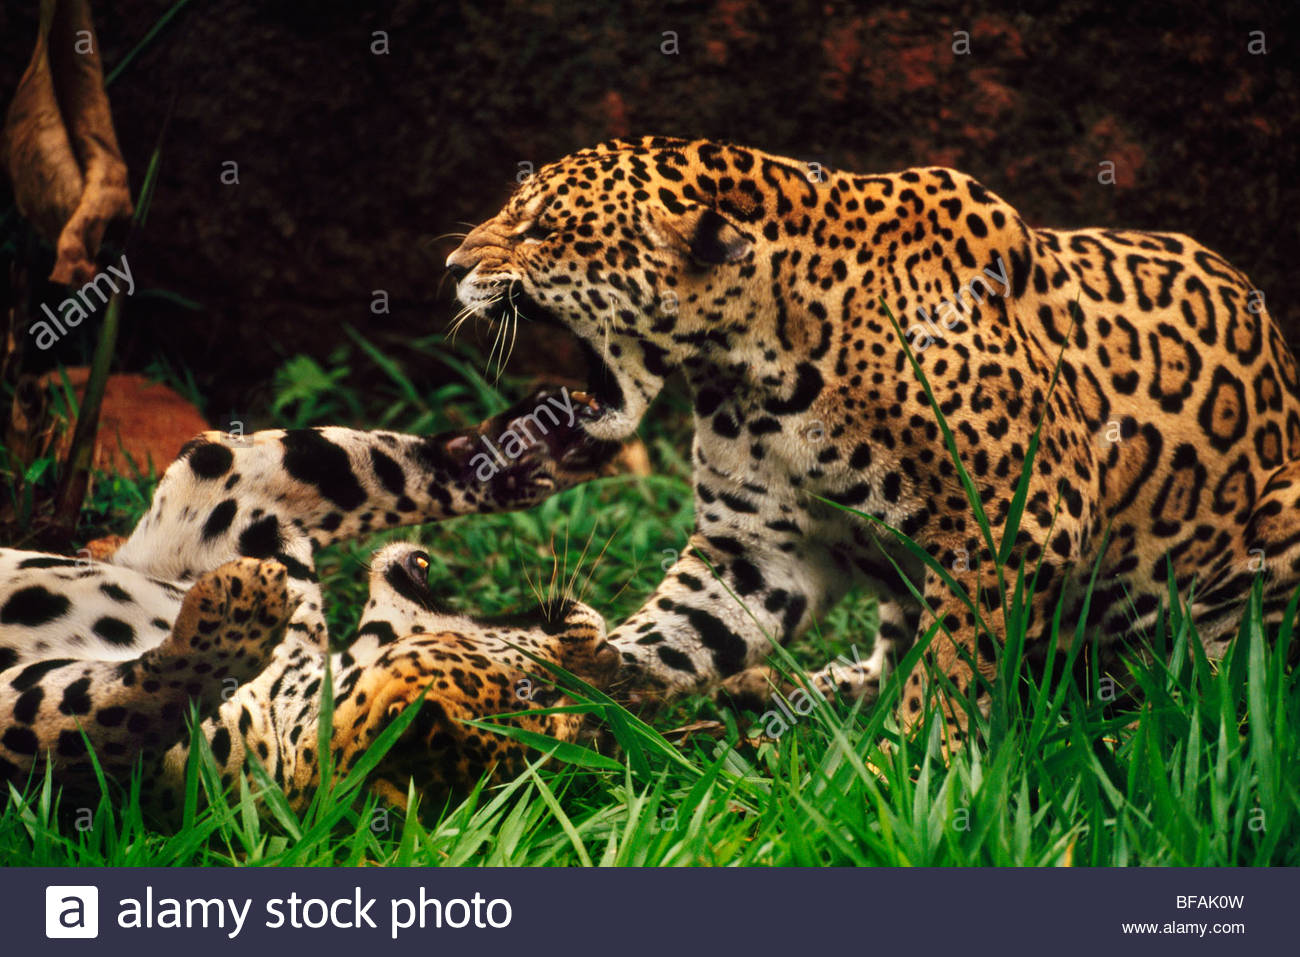 Jaguars fighting, Panthera onca, Brazil - Stock Image